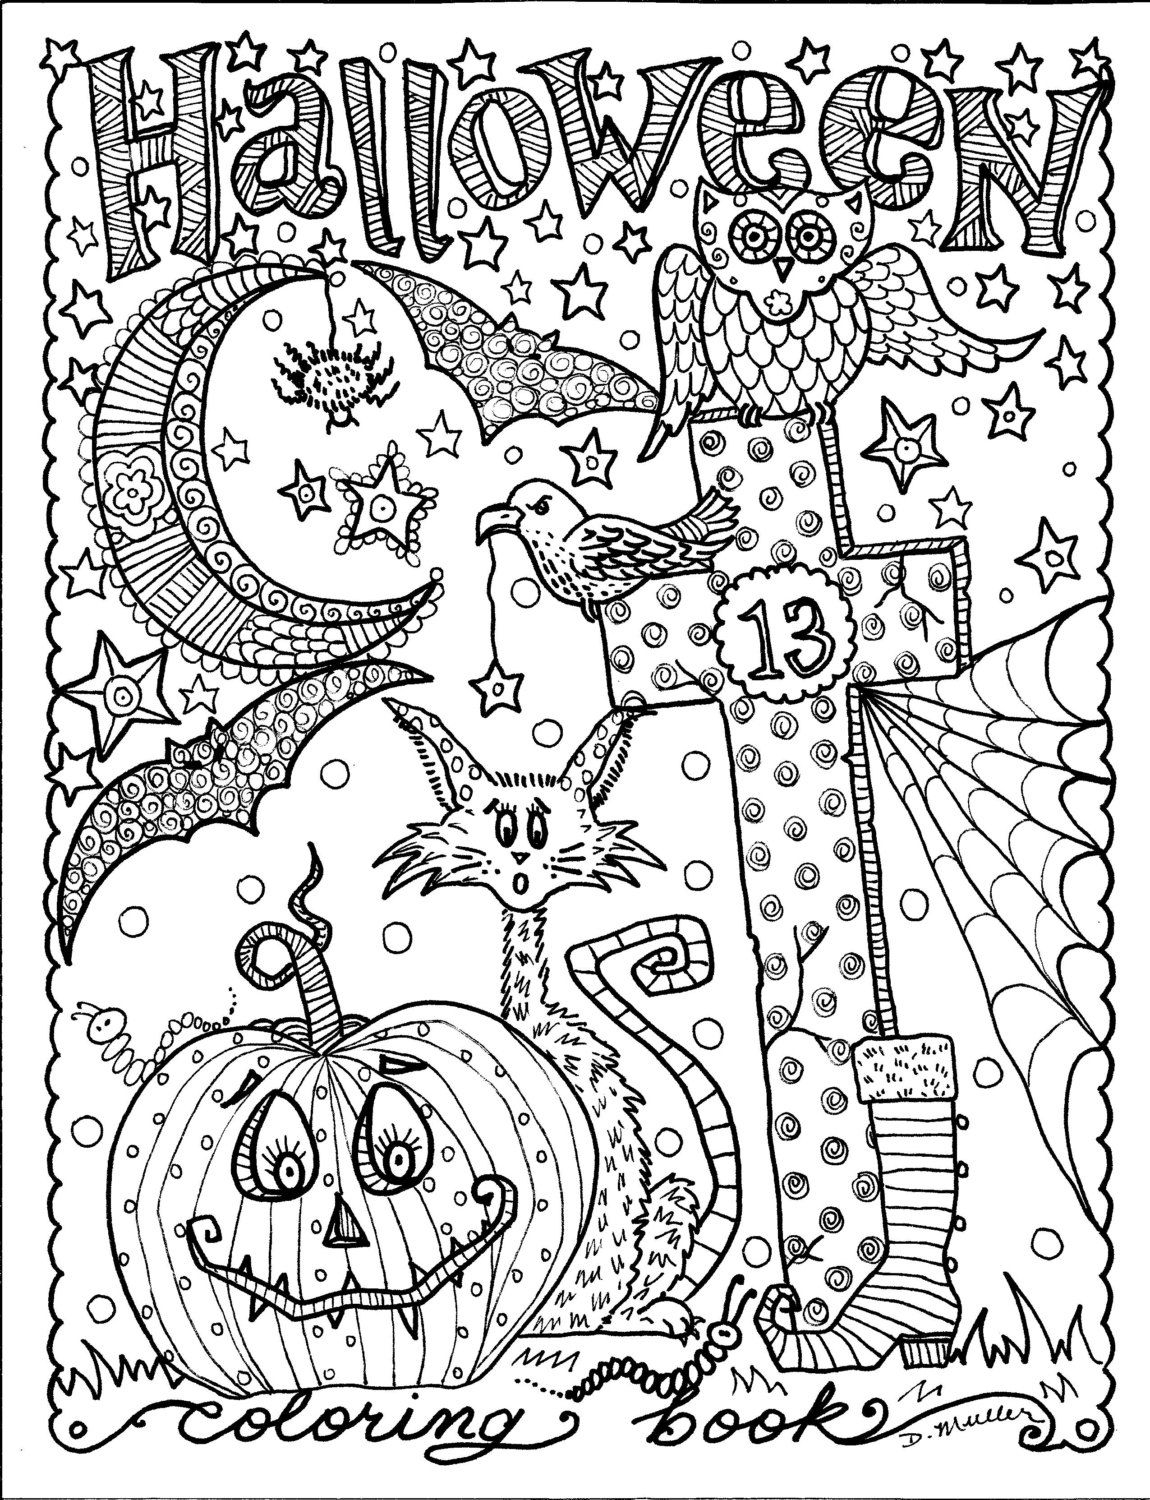 5 Pages Instant Download Halloween Coloring Pages Art To Color/Digital/Digi Stamp/Witch/Cat/Moon à Coloriage Adult